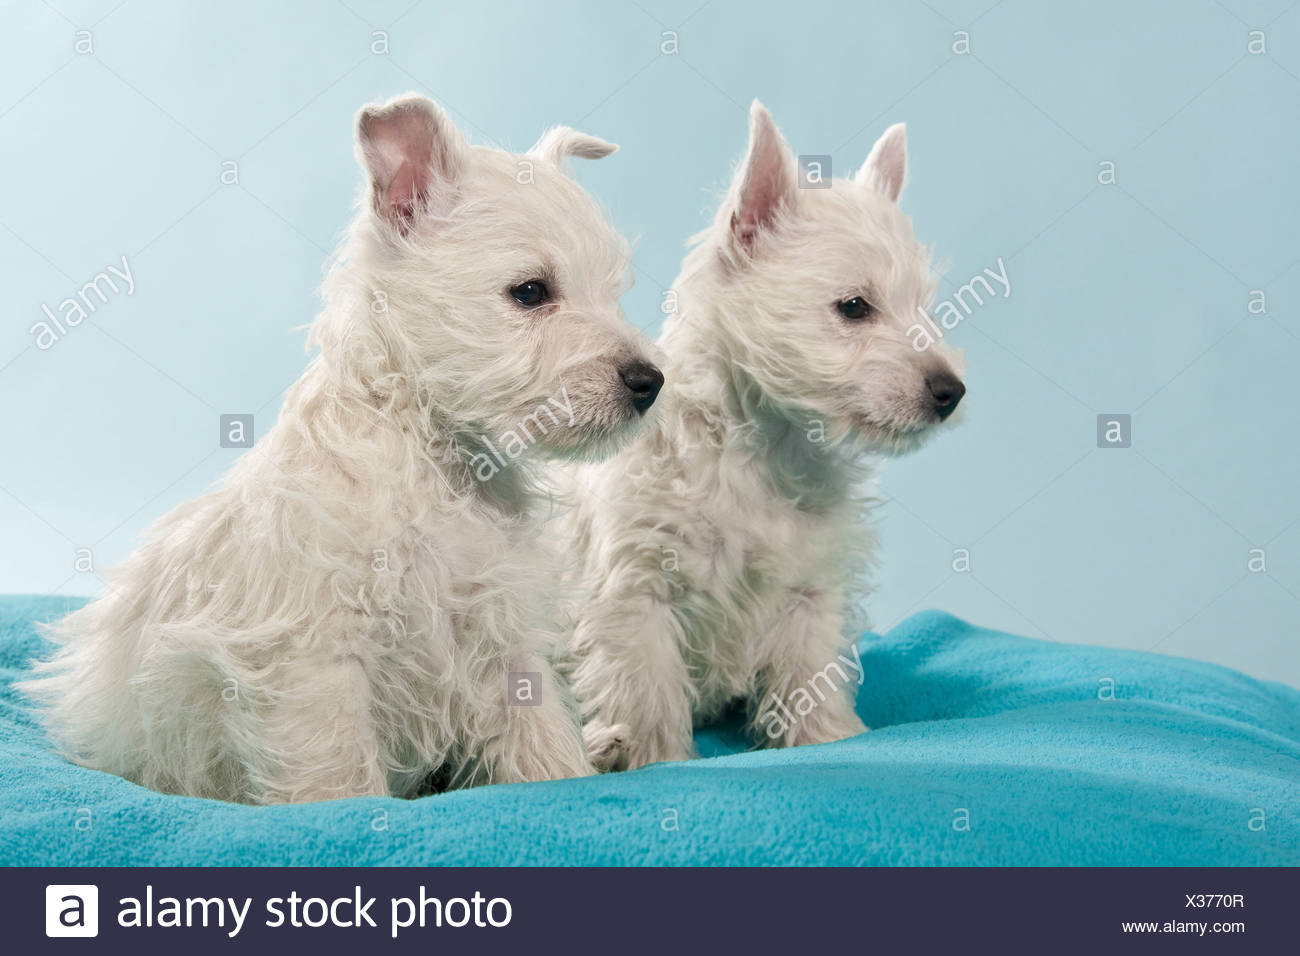 Two West Highland White Terriers, Westie puppies, sitting - Stock Image